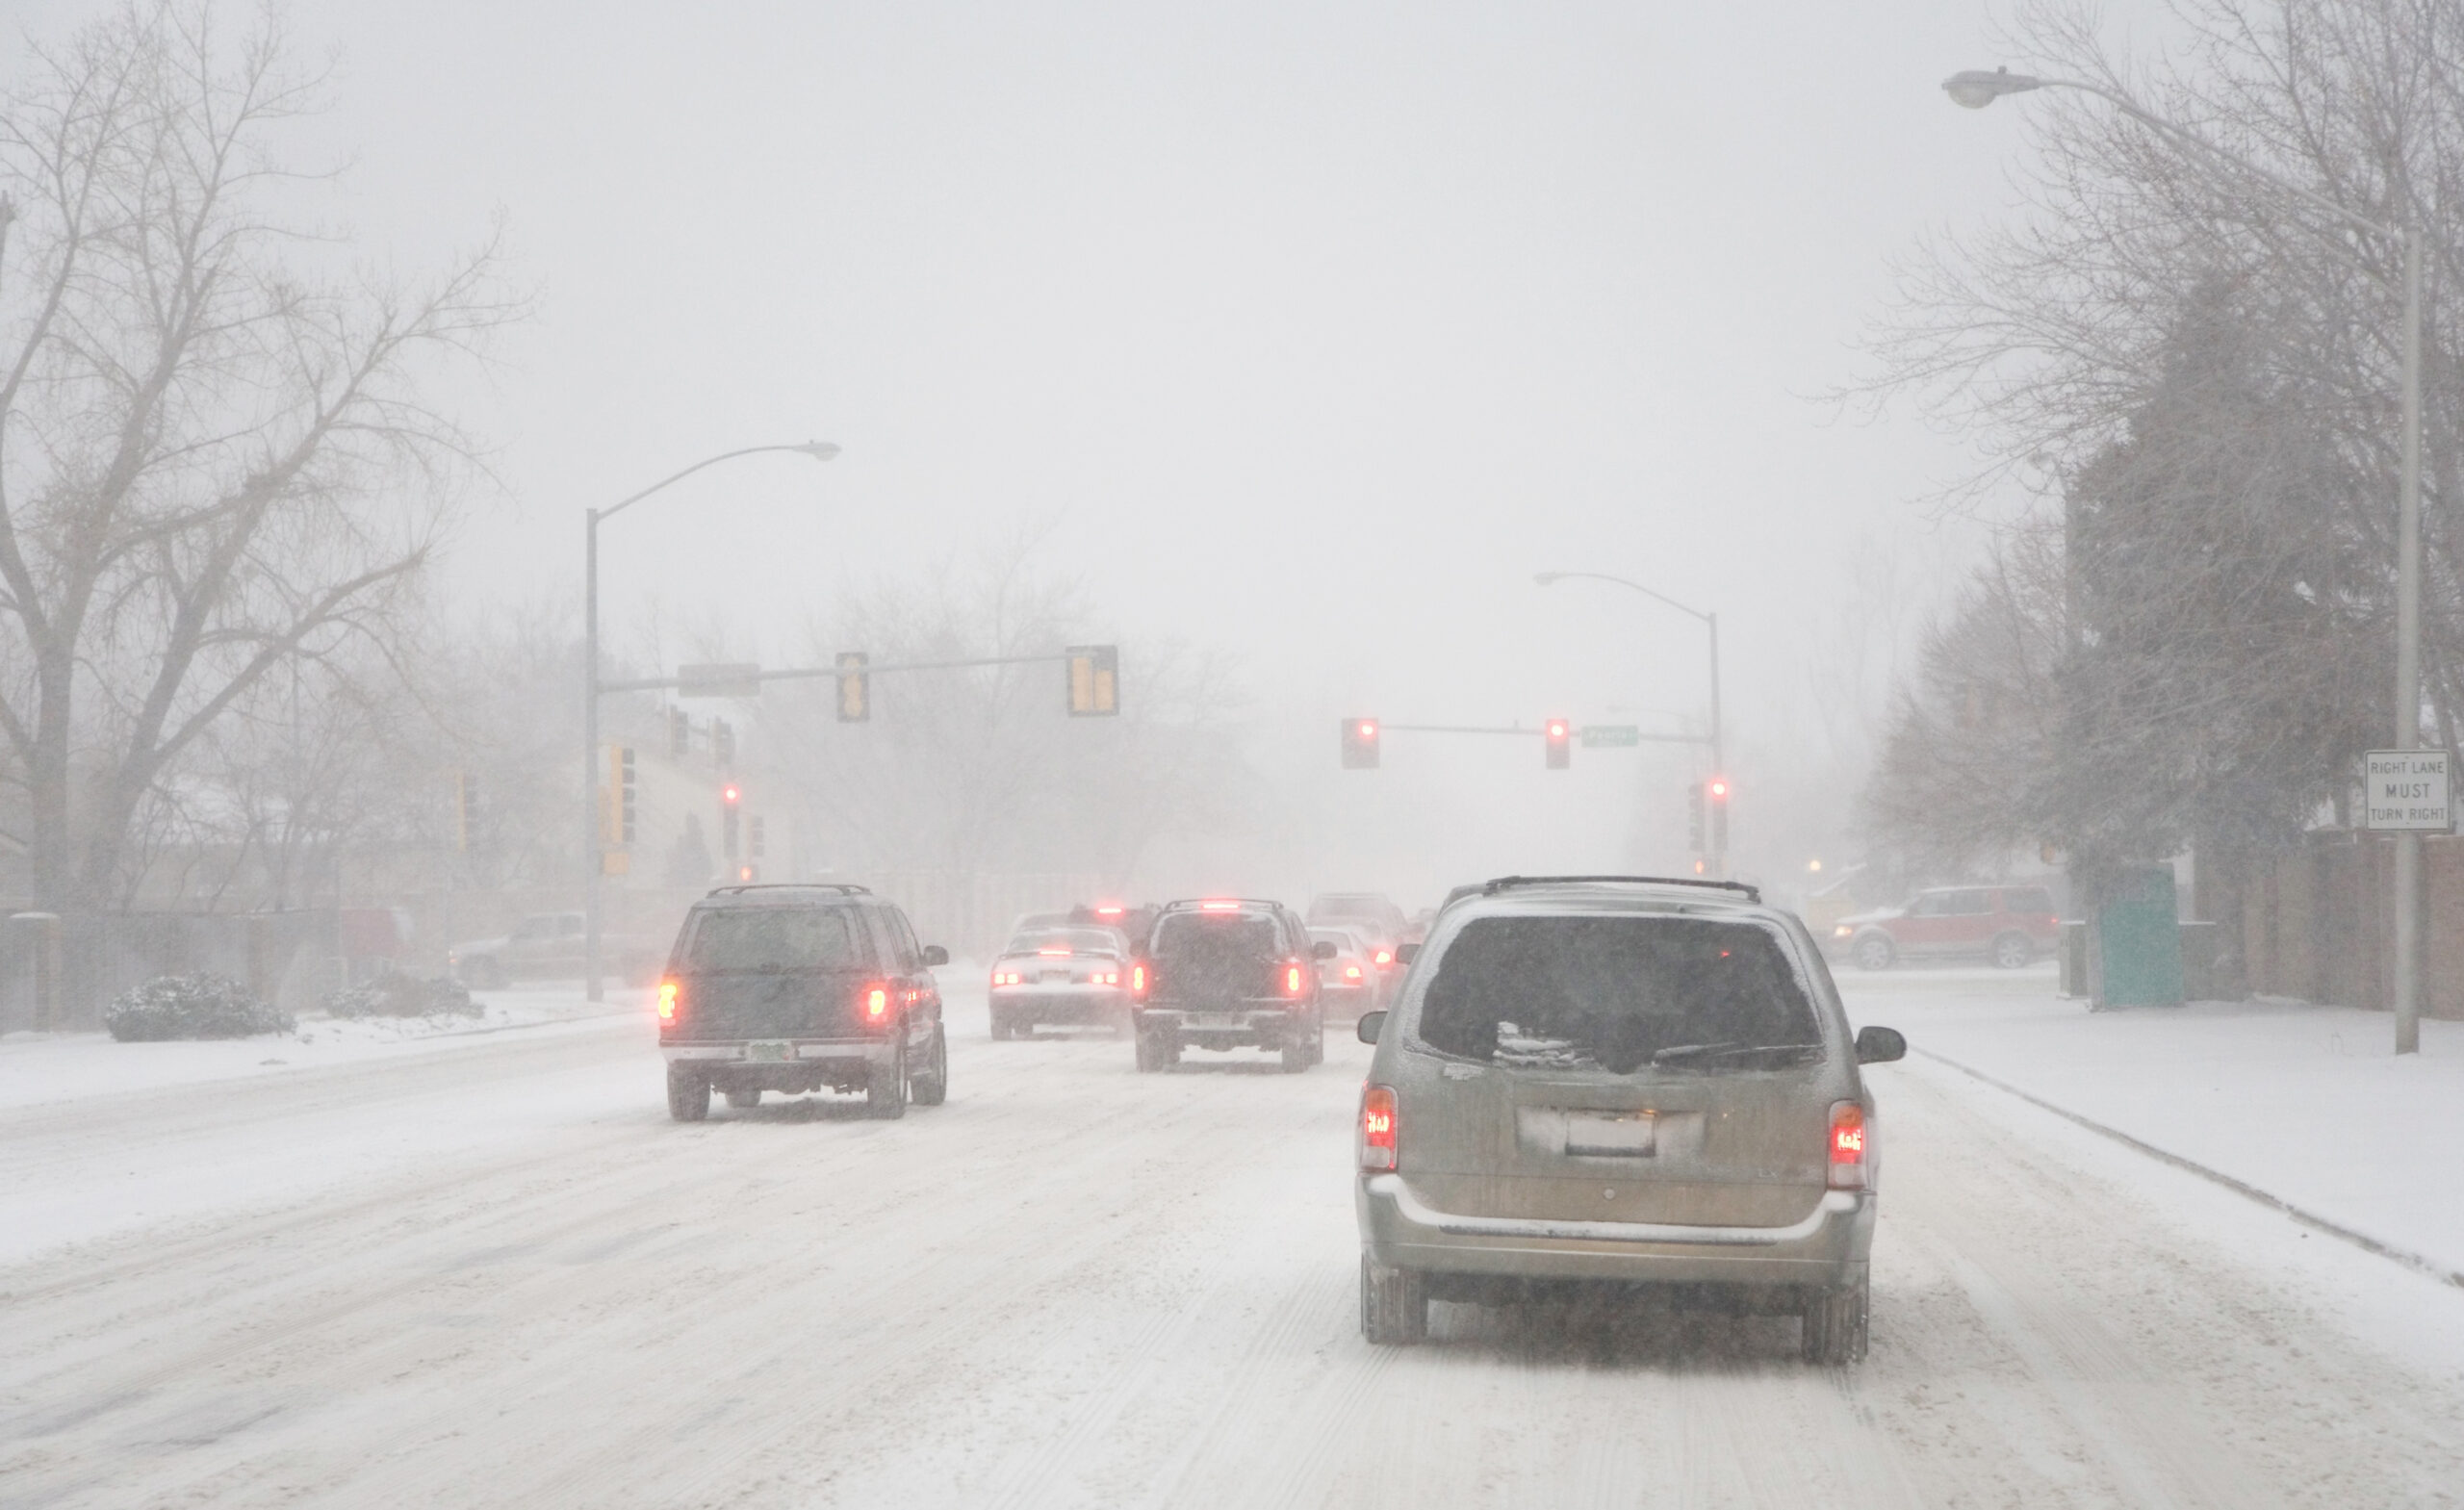 How to Drive Safely on Slick, Snowy Roads